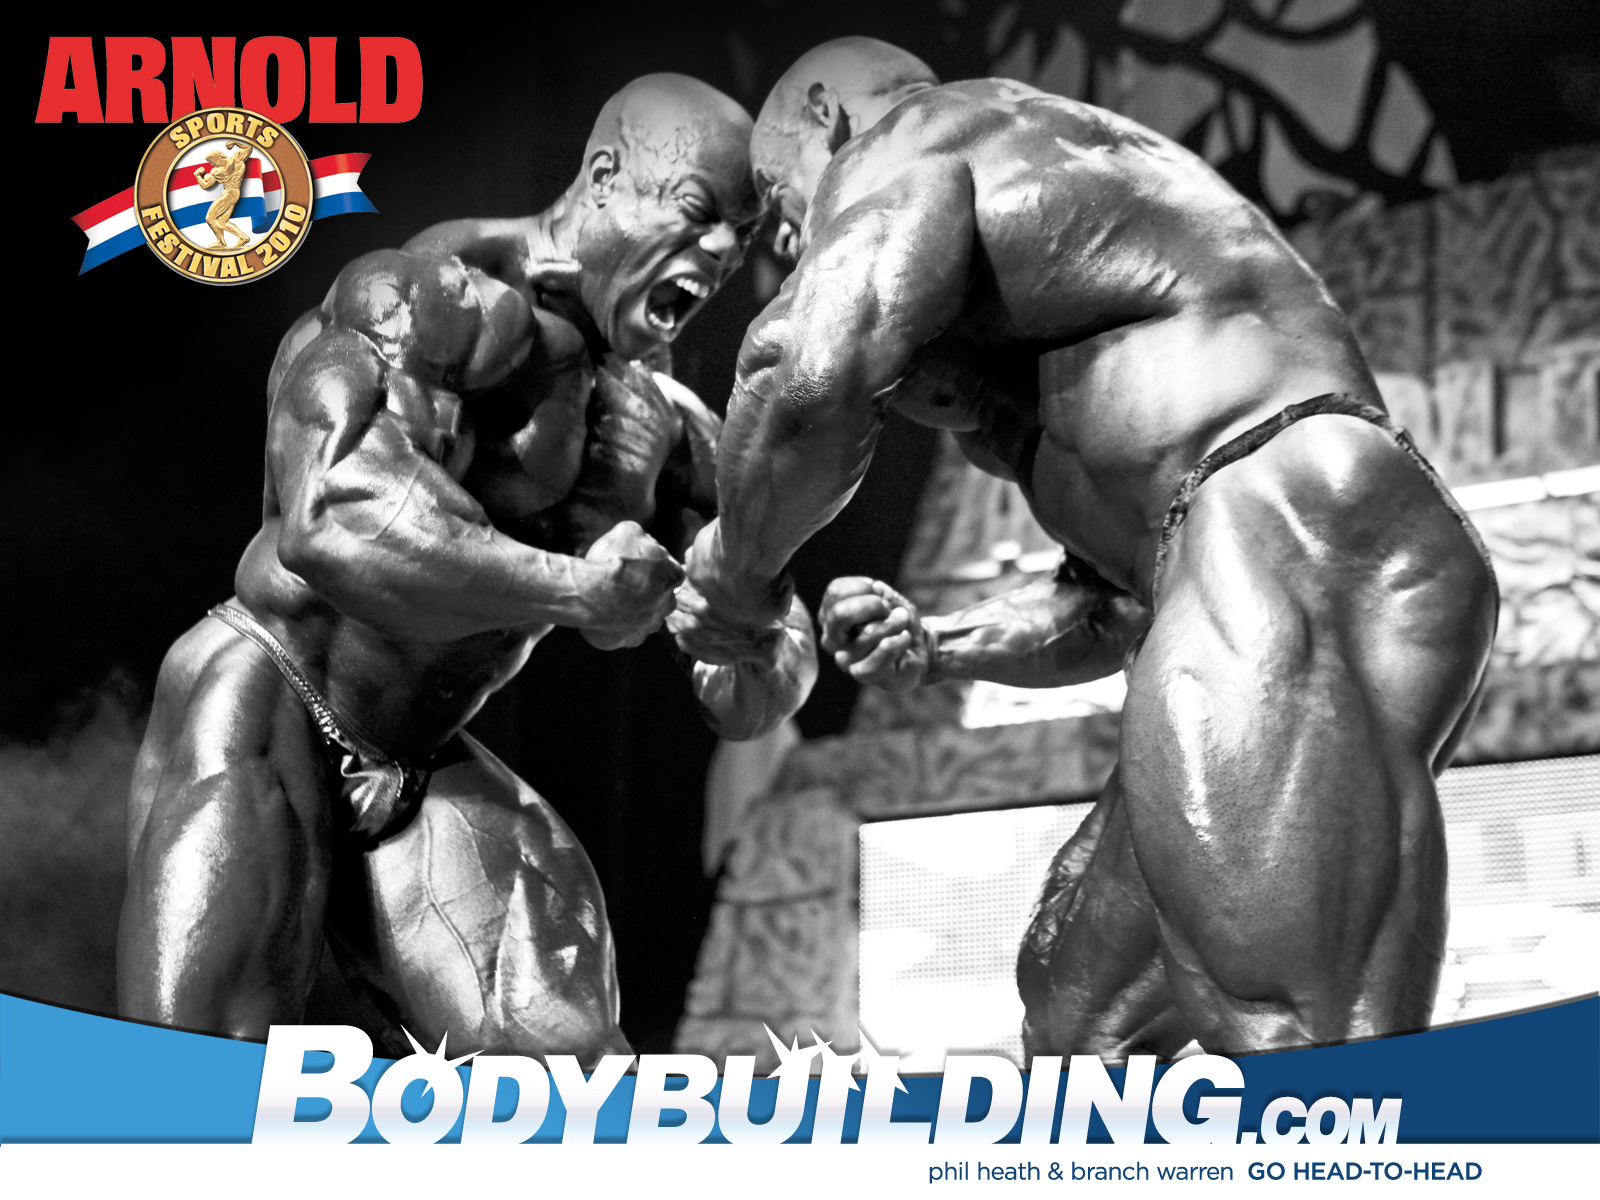 Labels: Arnold wallpaper, bodybuilding, Branch Warren, muscle, phill heath,